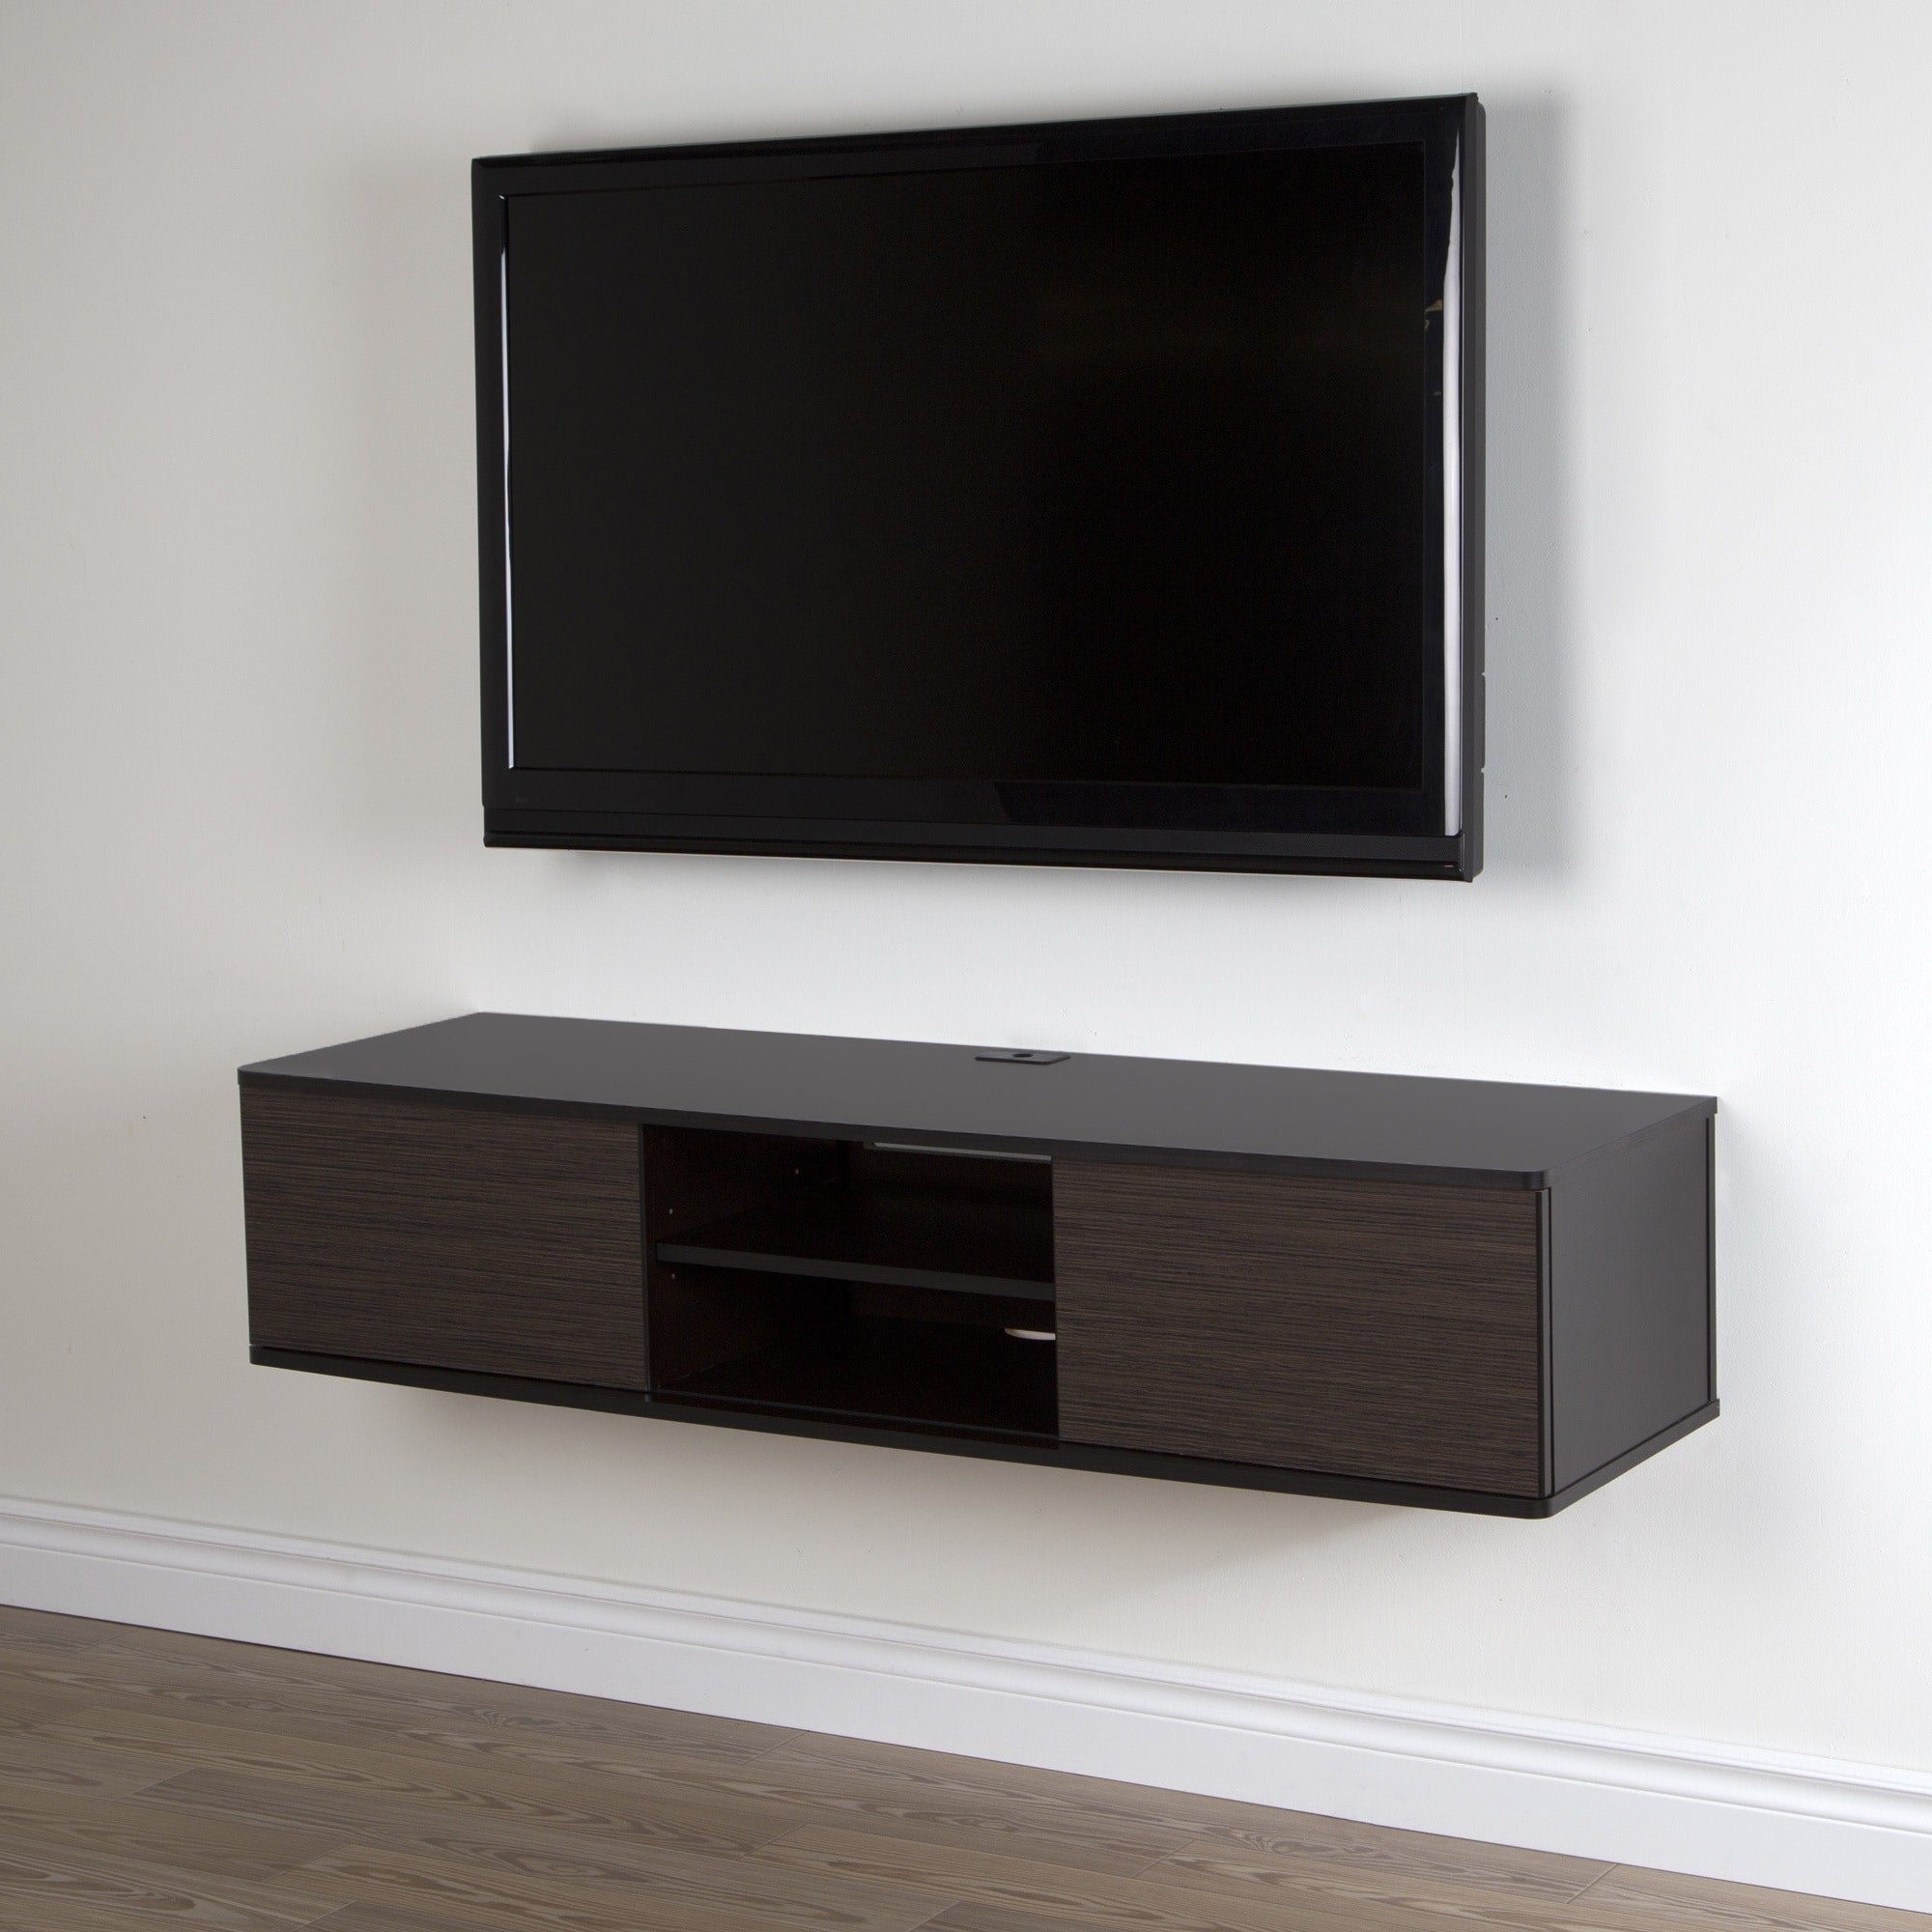 56-inch Wall Mounted Media Console